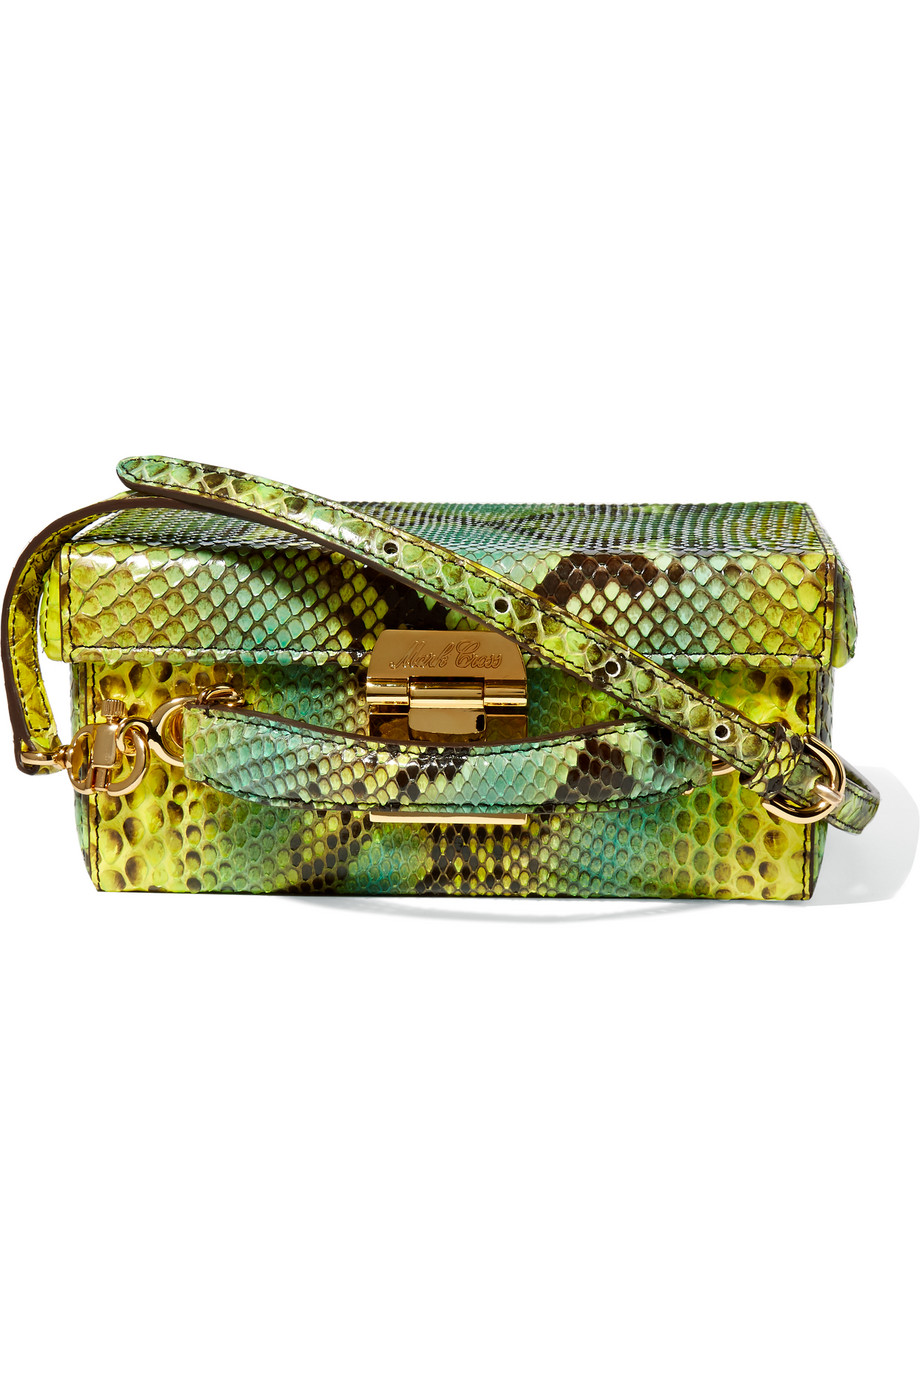 Mark Cross Grace Small Python and Leather Shoulder Bag, Green/Snake Print, Women's